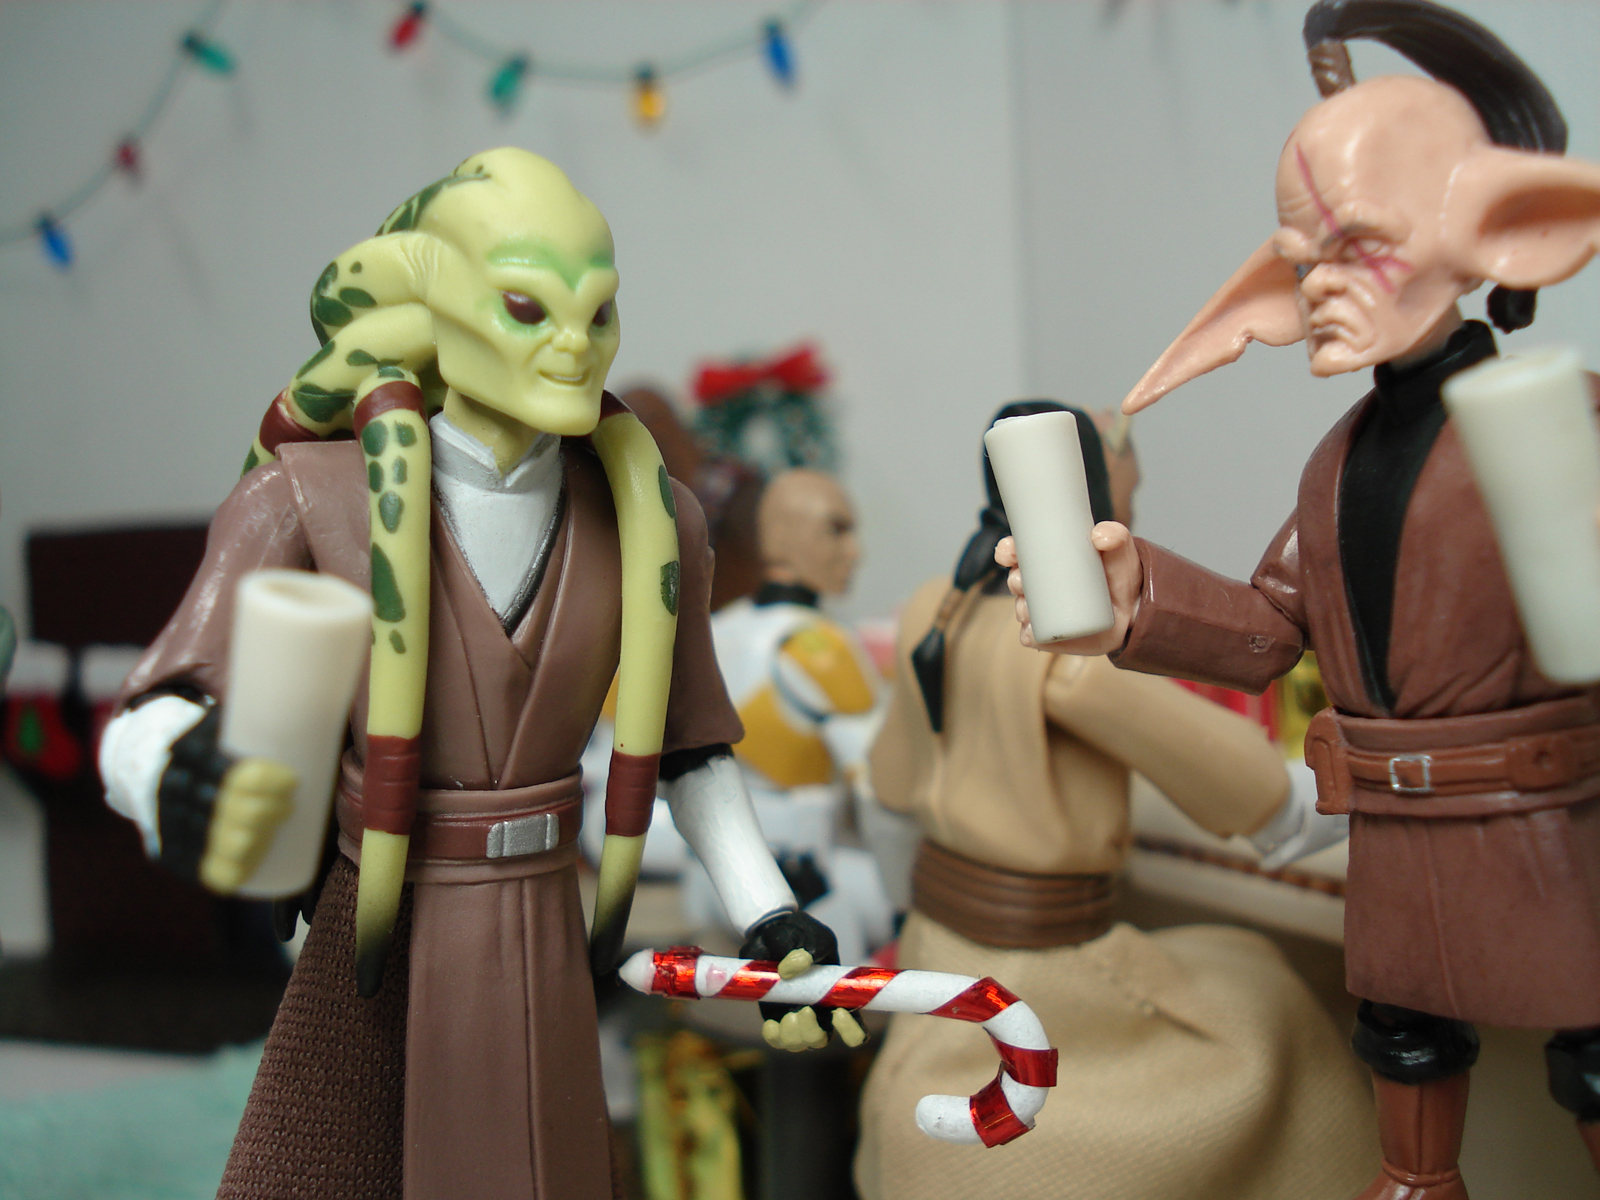 Kit Fisto is amused